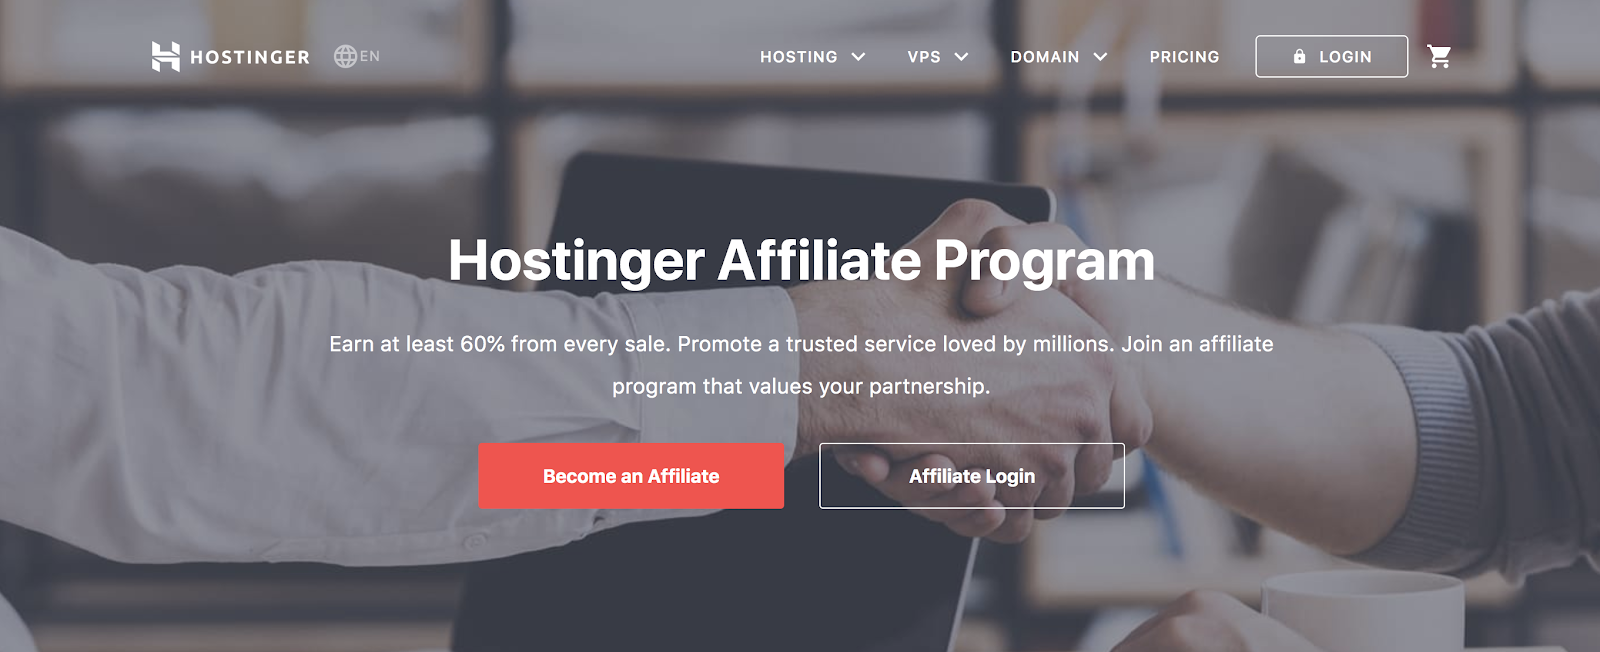 Honstinger's Affiliate Program Web Page Explainer (Screenshot)